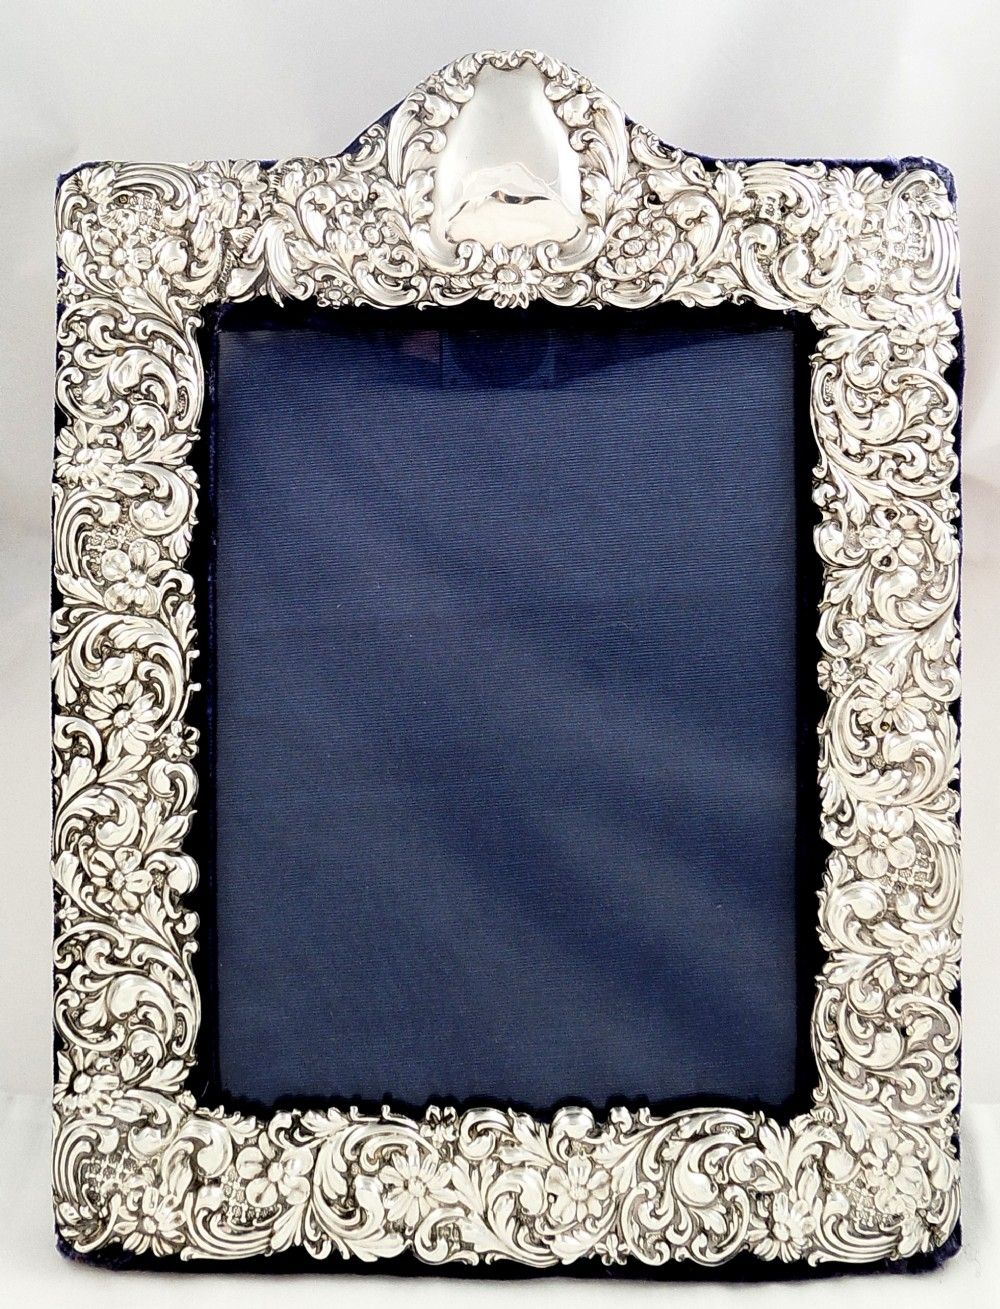 Antique edwardian sterling silver photo frame 1901 gold and antique edwardian sterling silver photo frame 1901 jeuxipadfo Image collections